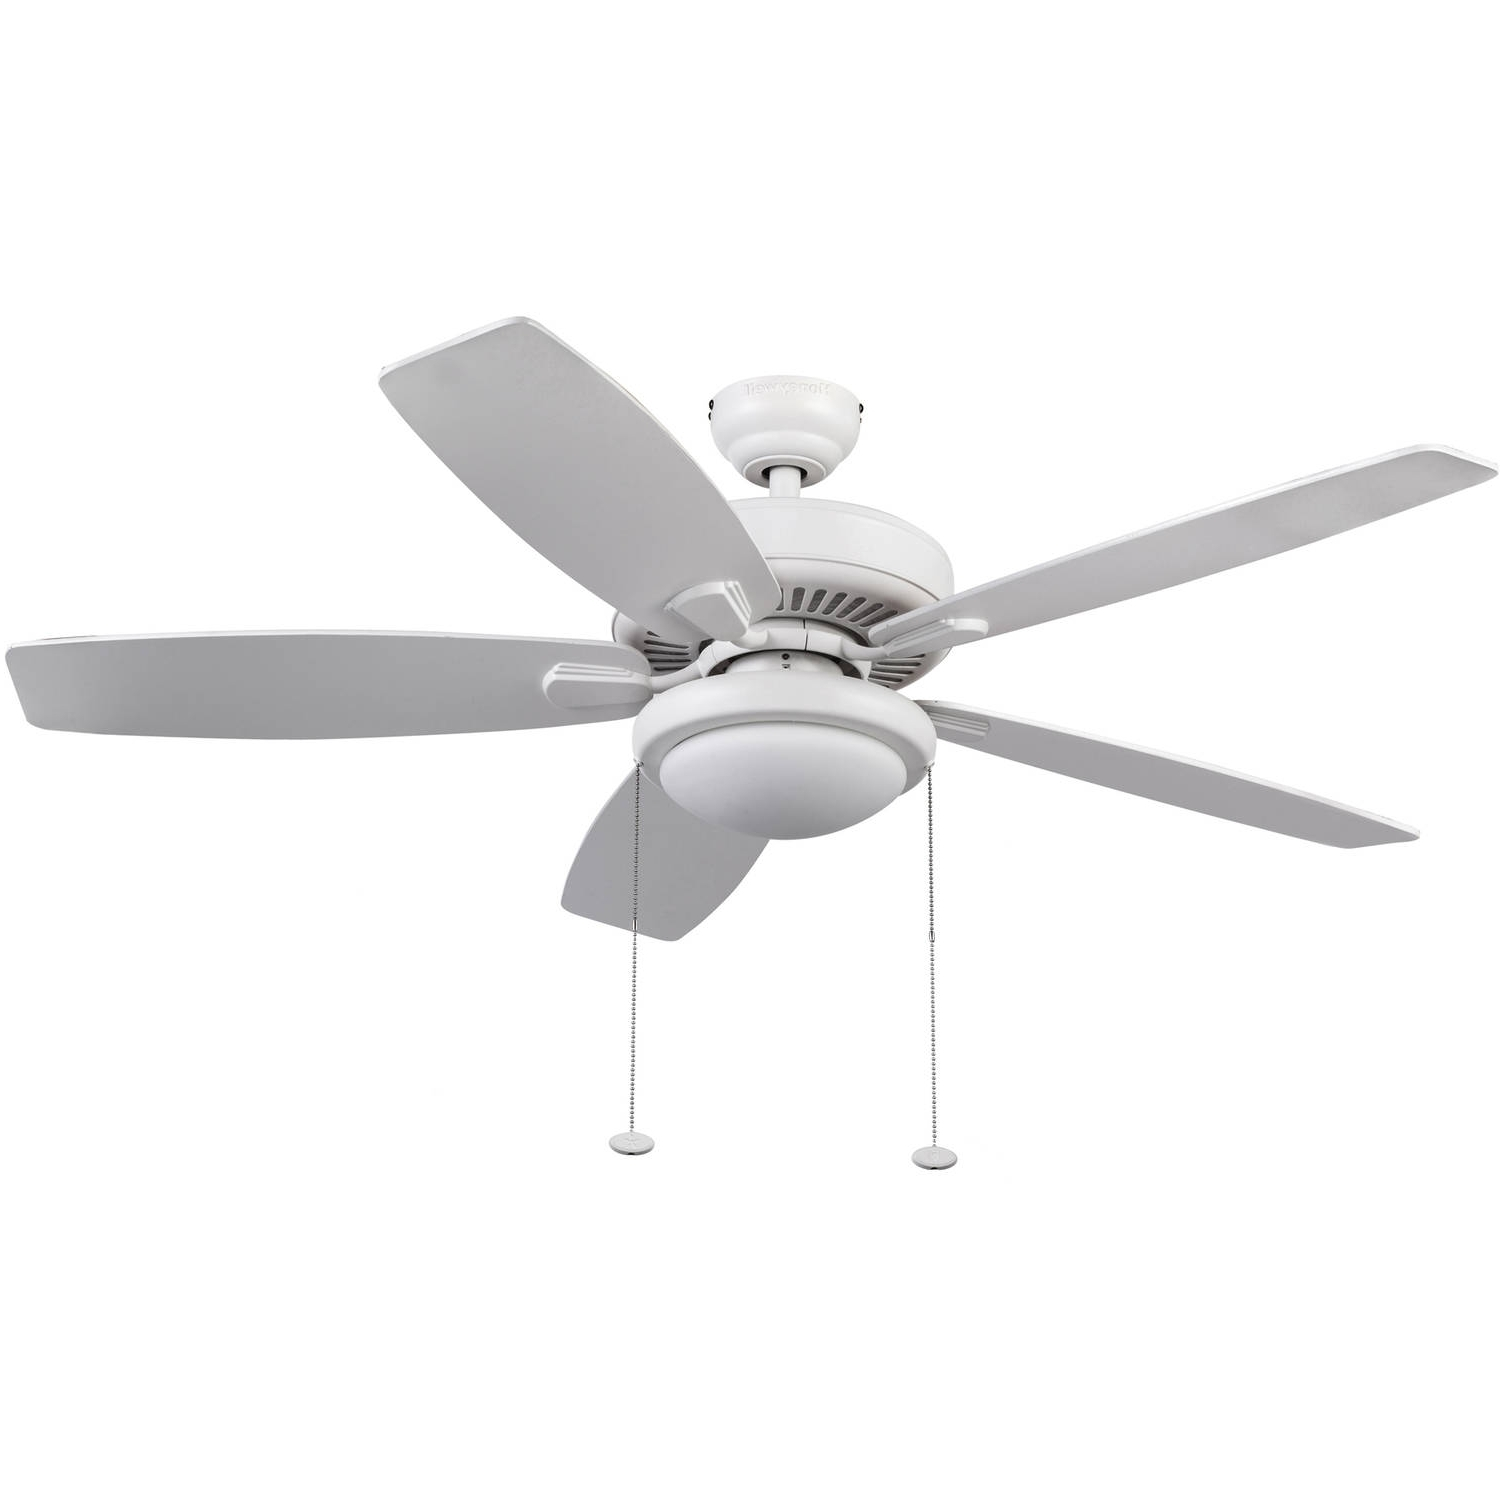 "Recent Outdoor Ceiling Fans With Lights At Walmart Intended For 52"" Honeywell Blufton Outdoor Ceiling Fan, White – Walmart (View 16 of 20)"